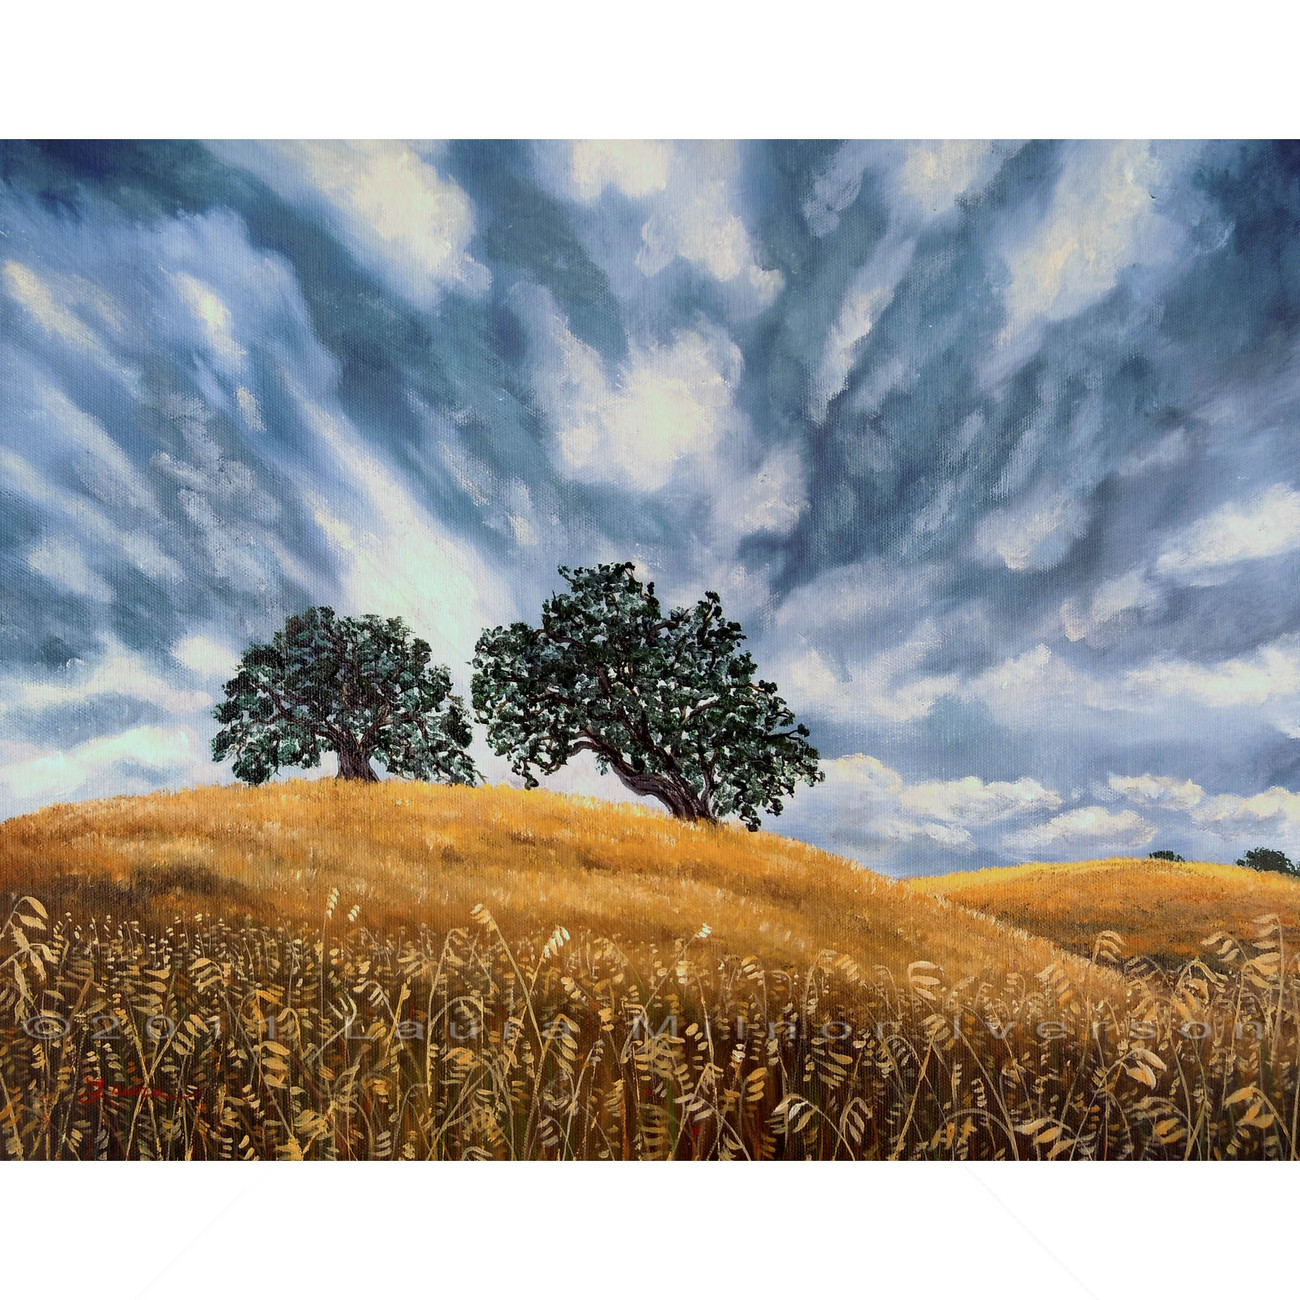 California Dramatic Golden Hill Oak Tree Gray Landscape Original Painting Art